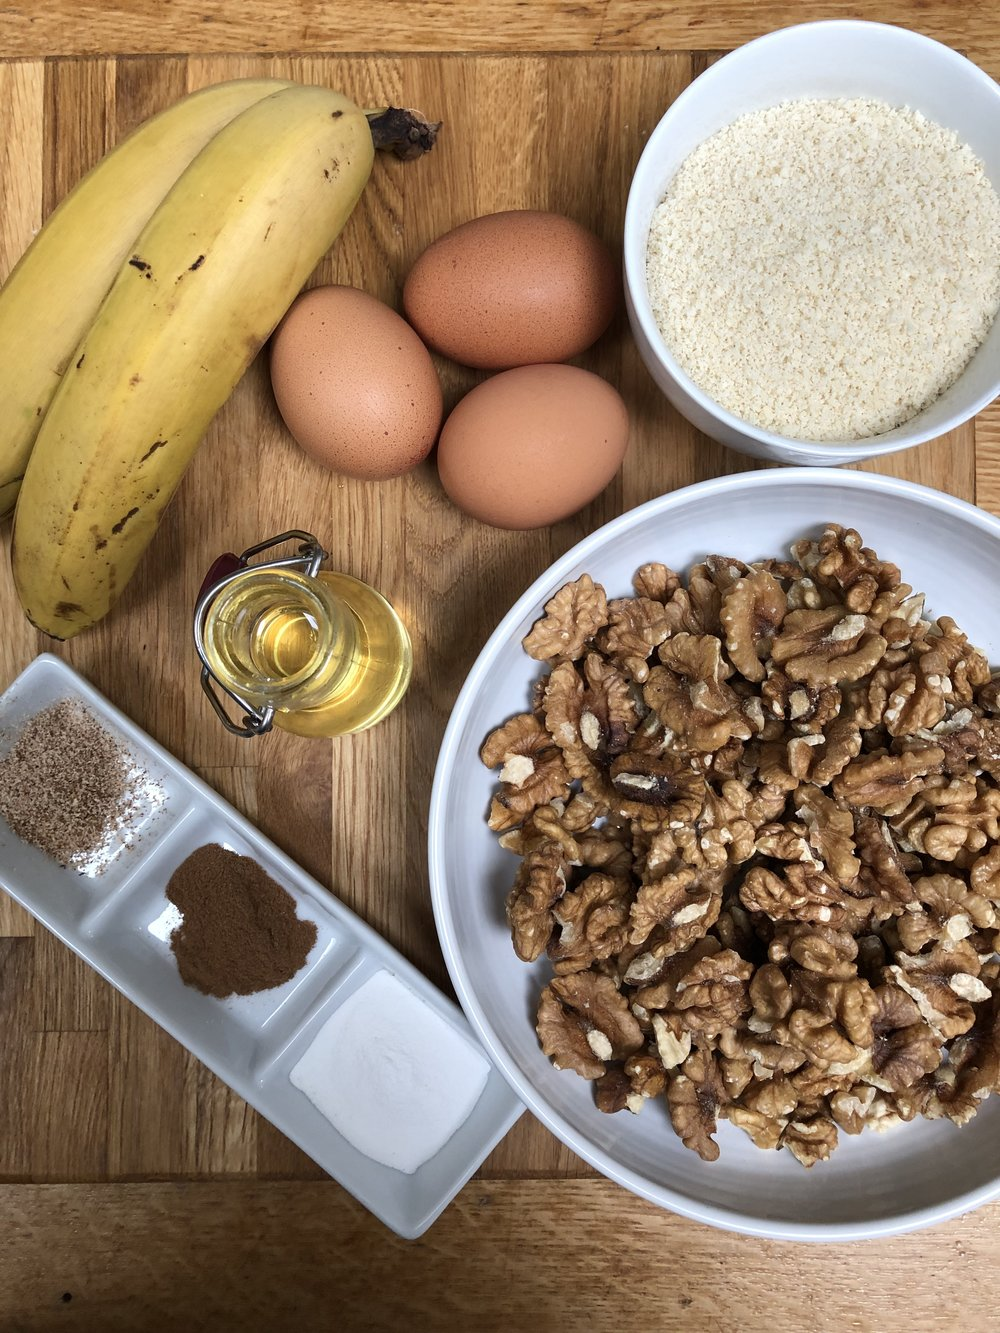 Ingredients for Banana and Walnut Bread